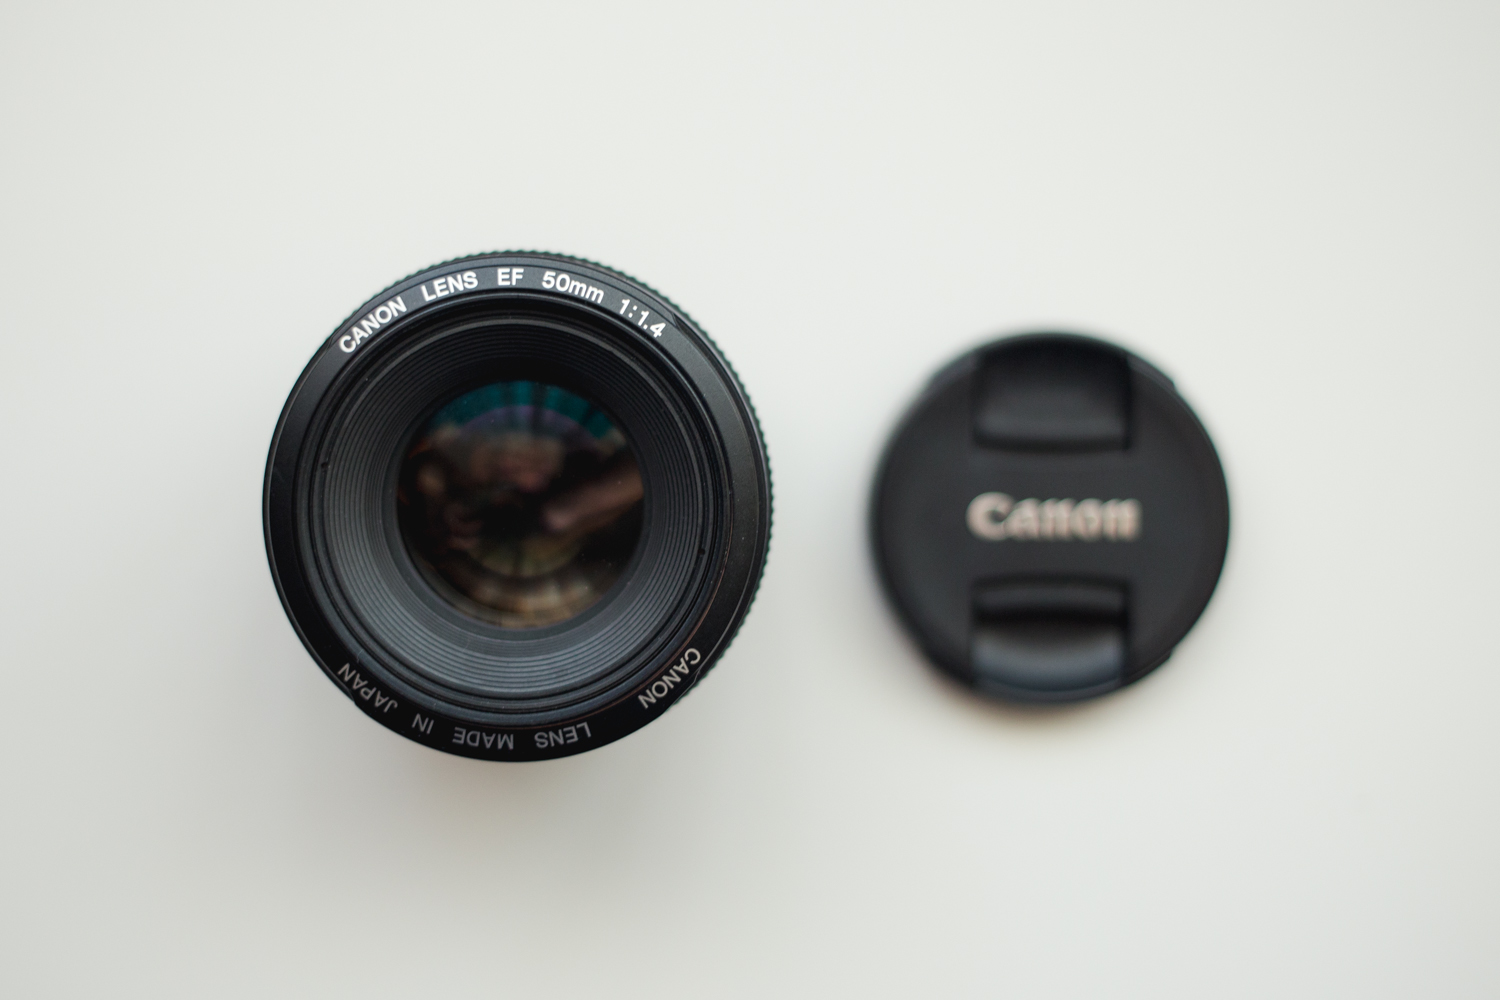 canon ef 50mm 1:1.4 f1.4